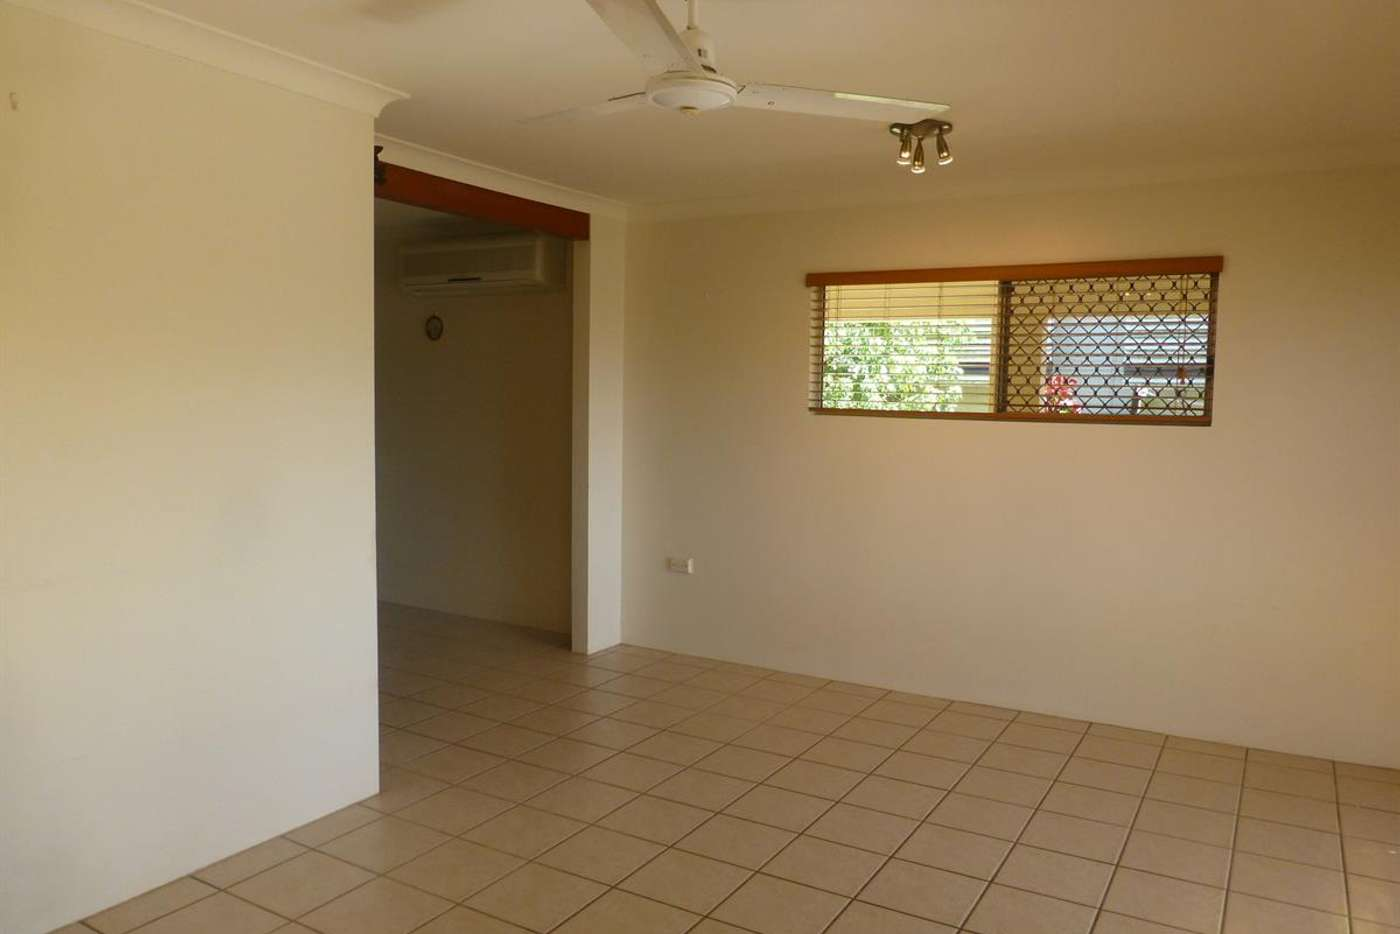 Seventh view of Homely house listing, 21 Cairns Road, Gordonvale QLD 4865